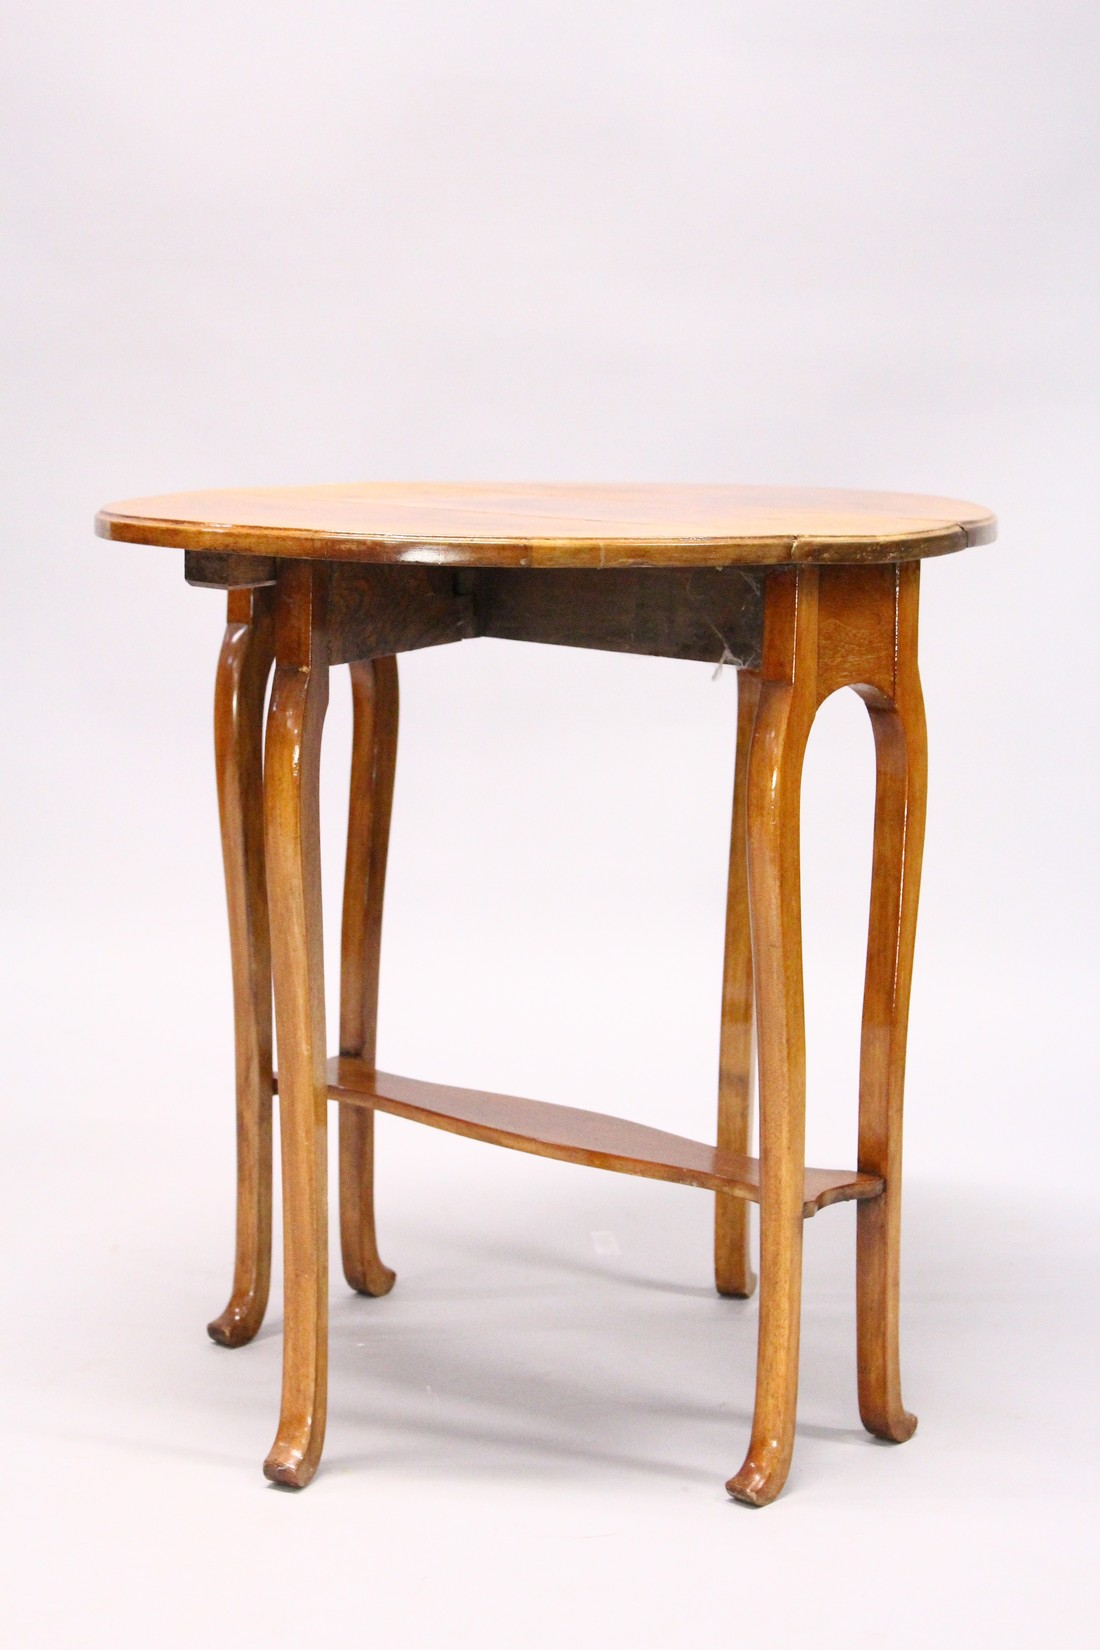 A POLLARD OAK OVAL DROP FLAP TABLE with undertier and curving legs. - Image 2 of 3